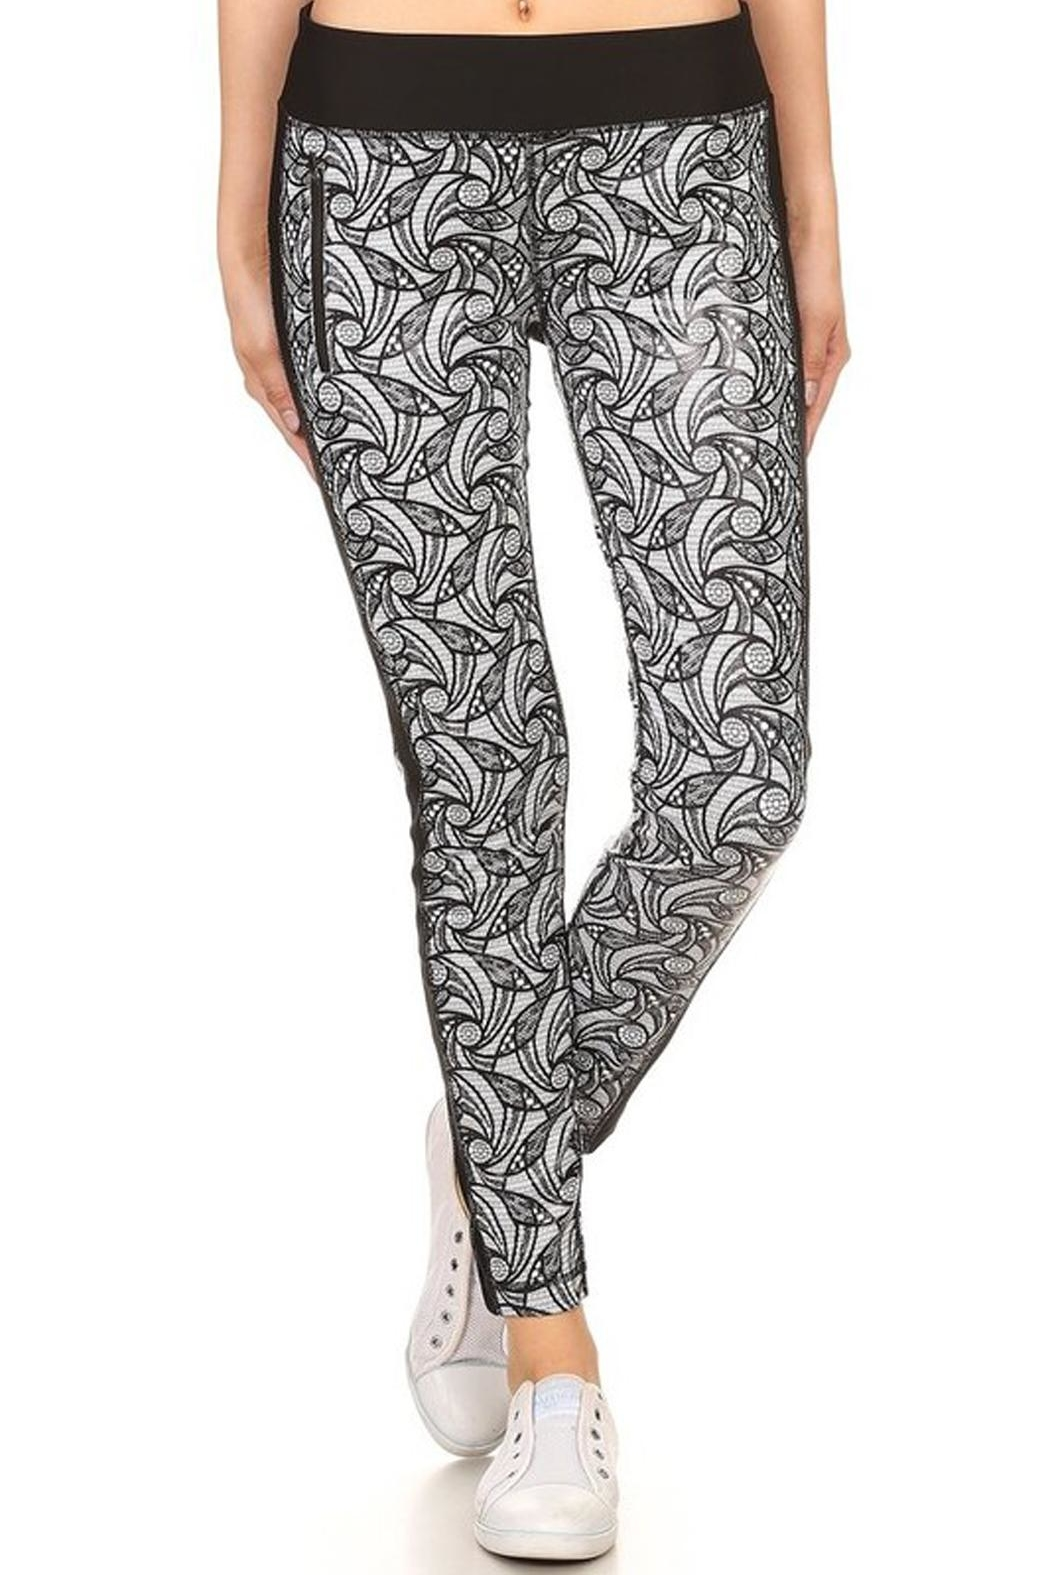 New Mix Flatlock Stitch Pant from New York by Avenue A